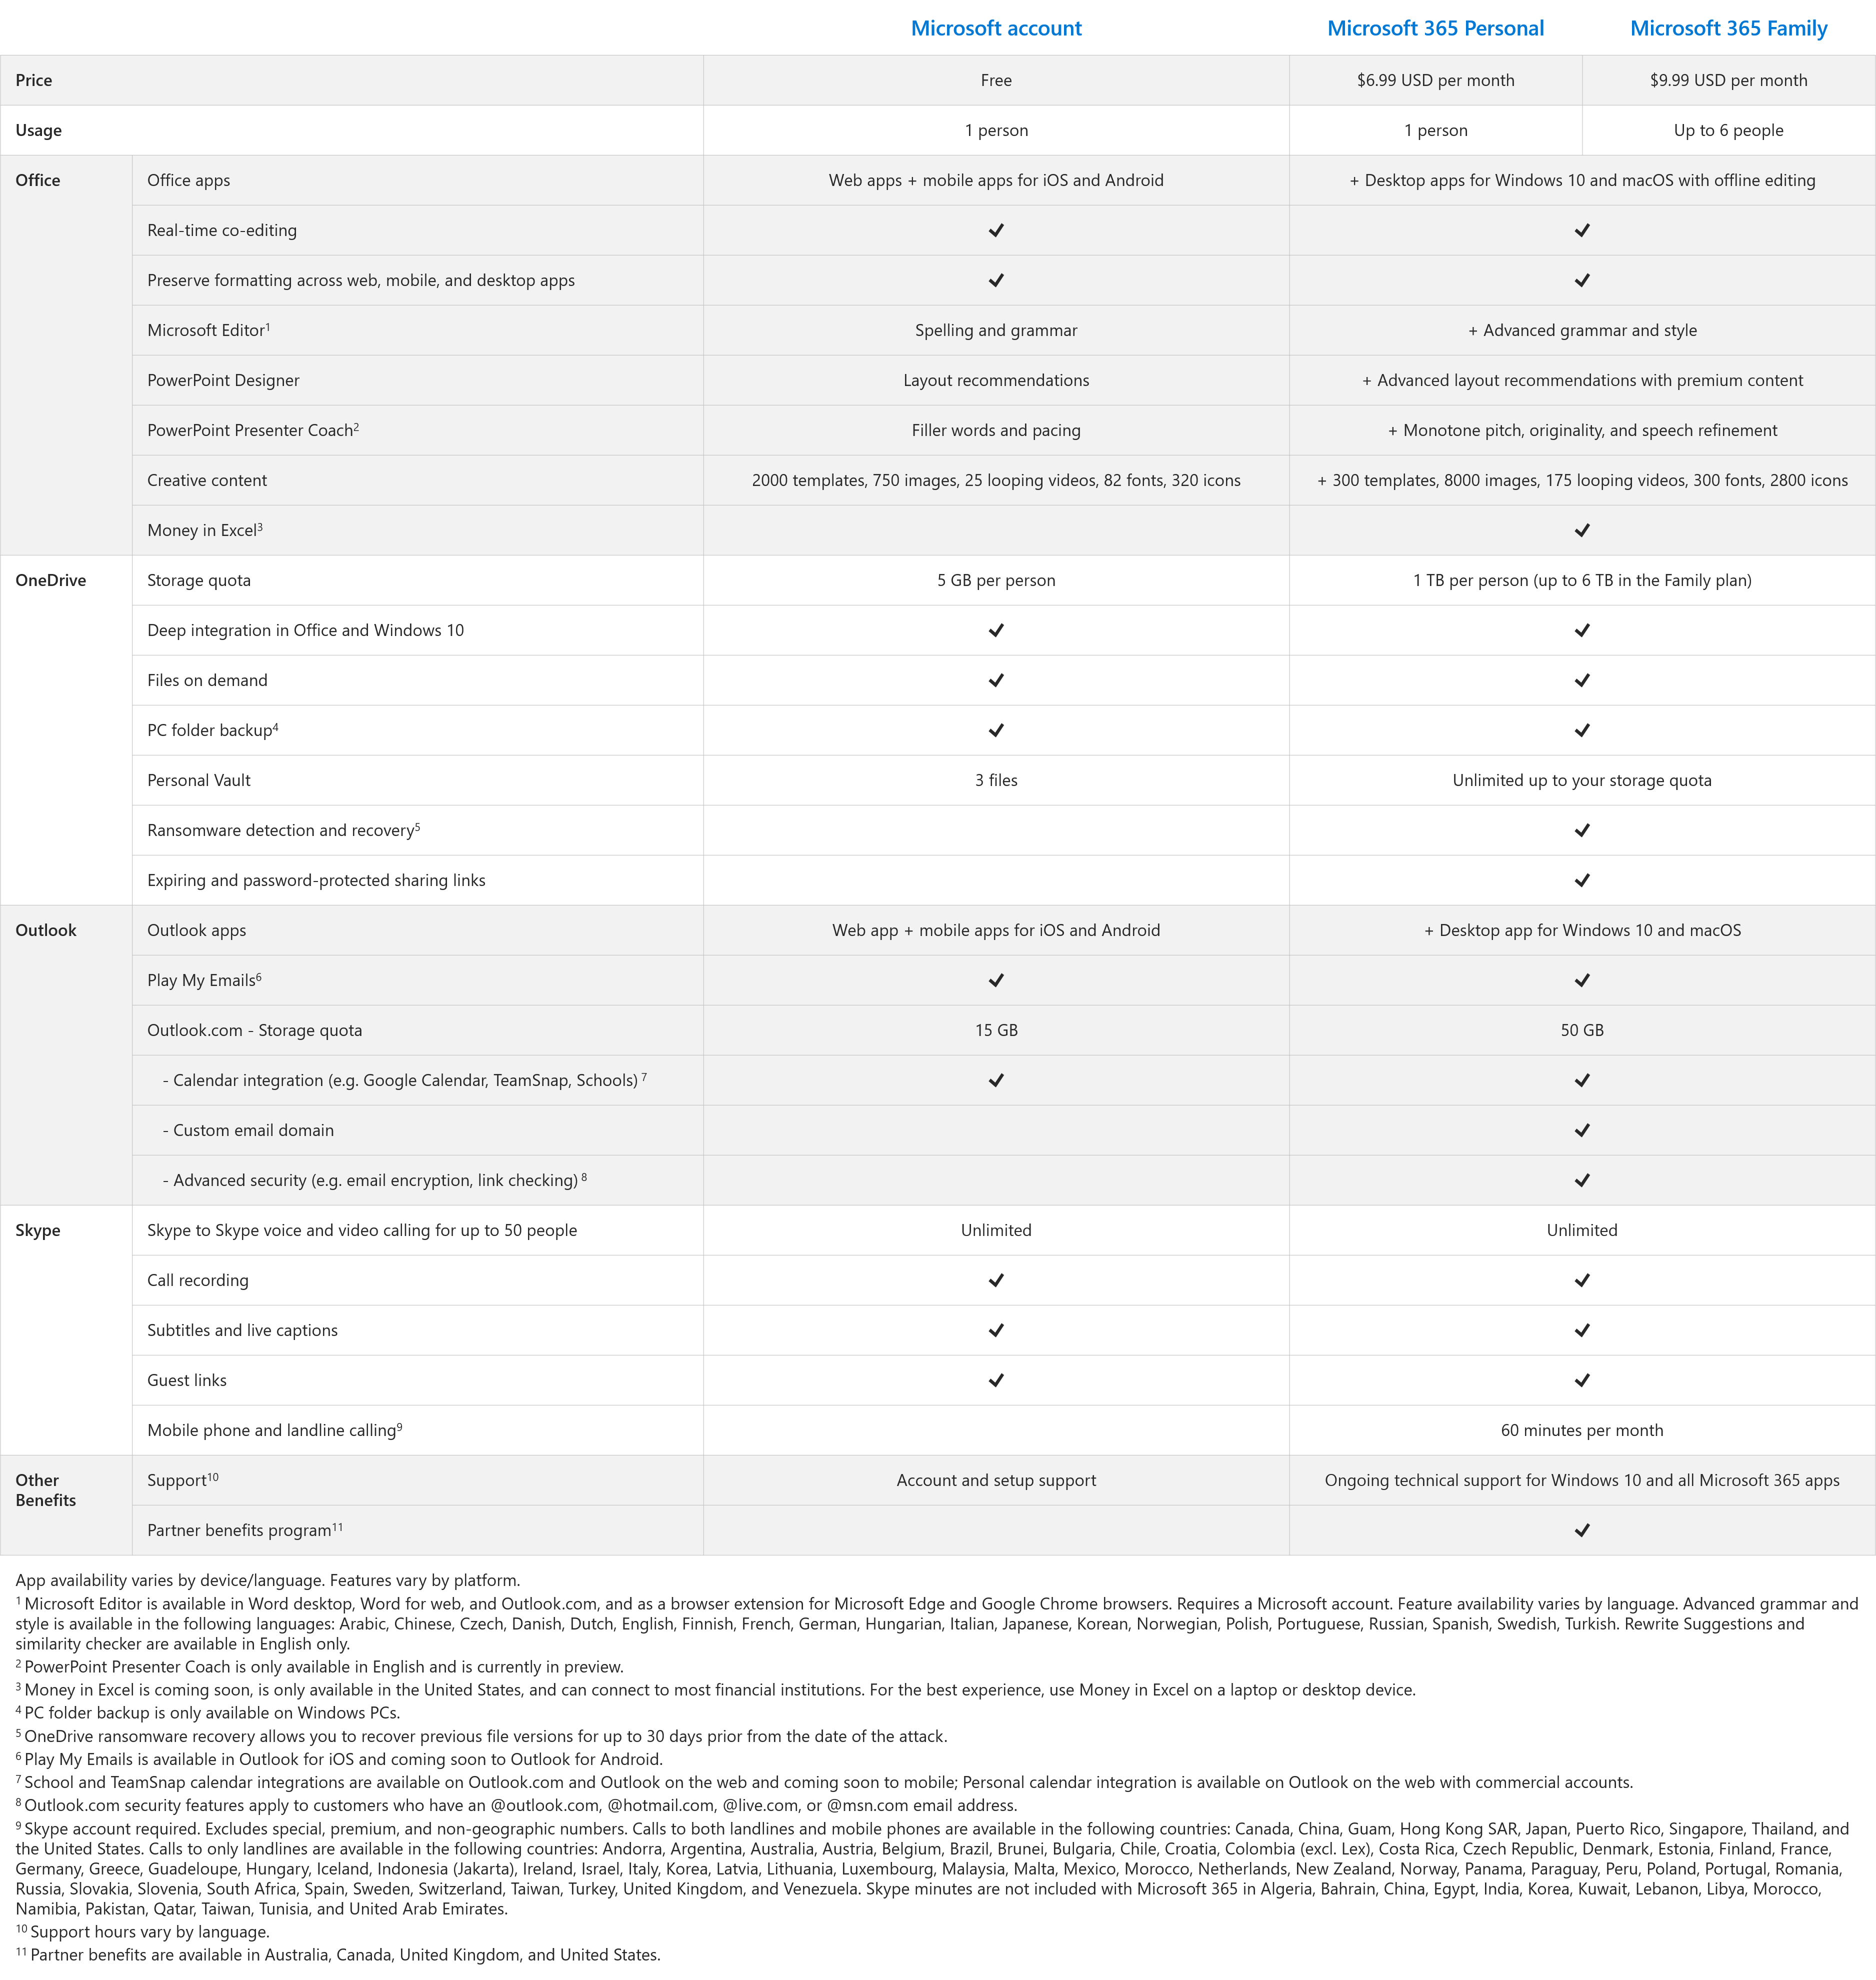 A table that compares what you get for free with a Microsoft account vs. a Microsoft 365 subscription: Microsoft account: • Price: Free • Usage: 1 person • Office: o Office apps: Web apps + mobile apps for iOS and Android o Real-time co-editing: Included o Preserve formatting across web, mobile, and desktop apps: Included o Microsoft Editor: Spelling and grammar o PowerPoint Designer: Layout recommendations o PowerPoint Presenter Coach: Filler words and pacing o Creative content: 2000 templates, 750 images, 25 looping videos, 82 fonts, 320 icons o Money in Excel: Not included • OneDrive: o Storage quota: 5 GB per person o Deep integration in Office and Windows 10: Included o Files on demand: Included o PC folder backup: Included o Personal Vault: 3 files o Ransomware detection and recovery: Not included o Expiring and password-protected sharing links: Not included • Outlook: o Outlook apps: Web app + mobile apps for iOS and Android o Play My Emails (iOS, Android): Included o Outlook.com - Storage quota: 15 GB o Outlook.com - Calendar integration (e.g. Google Calendar, TeamSnap, Schools): Included o Outlook.com - Custom email domain: Not included o Outlook.com - Advanced security (e.g. email encryption, link checking): Not included • Skype: o Skype to Skype voice and video calling for up to 50 people: Unlimited o Call recording: Included o Subtitles and live captions: Included o Guest links: Included o Mobile phone and landline calling: Not included • Other benefits: o Support : Account and setup support o Partner benefits program: Not included Microsoft 365 Personal and Microsoft 365 Family: • Microsoft 365 Personal: o Price: $6.99 USD per month o Usage: 1 person • Microsoft 365 Family: o Price: $9.99 USD per month o Usage: Up to 6 people • Both Microsoft 365 Personal and Microsoft 365 Family include everything that comes with a Microsoft account plus: o Office:  Office apps: Desktop apps for Windows 10 and macOS with offline editing  Real-time co-editing: Advanced 